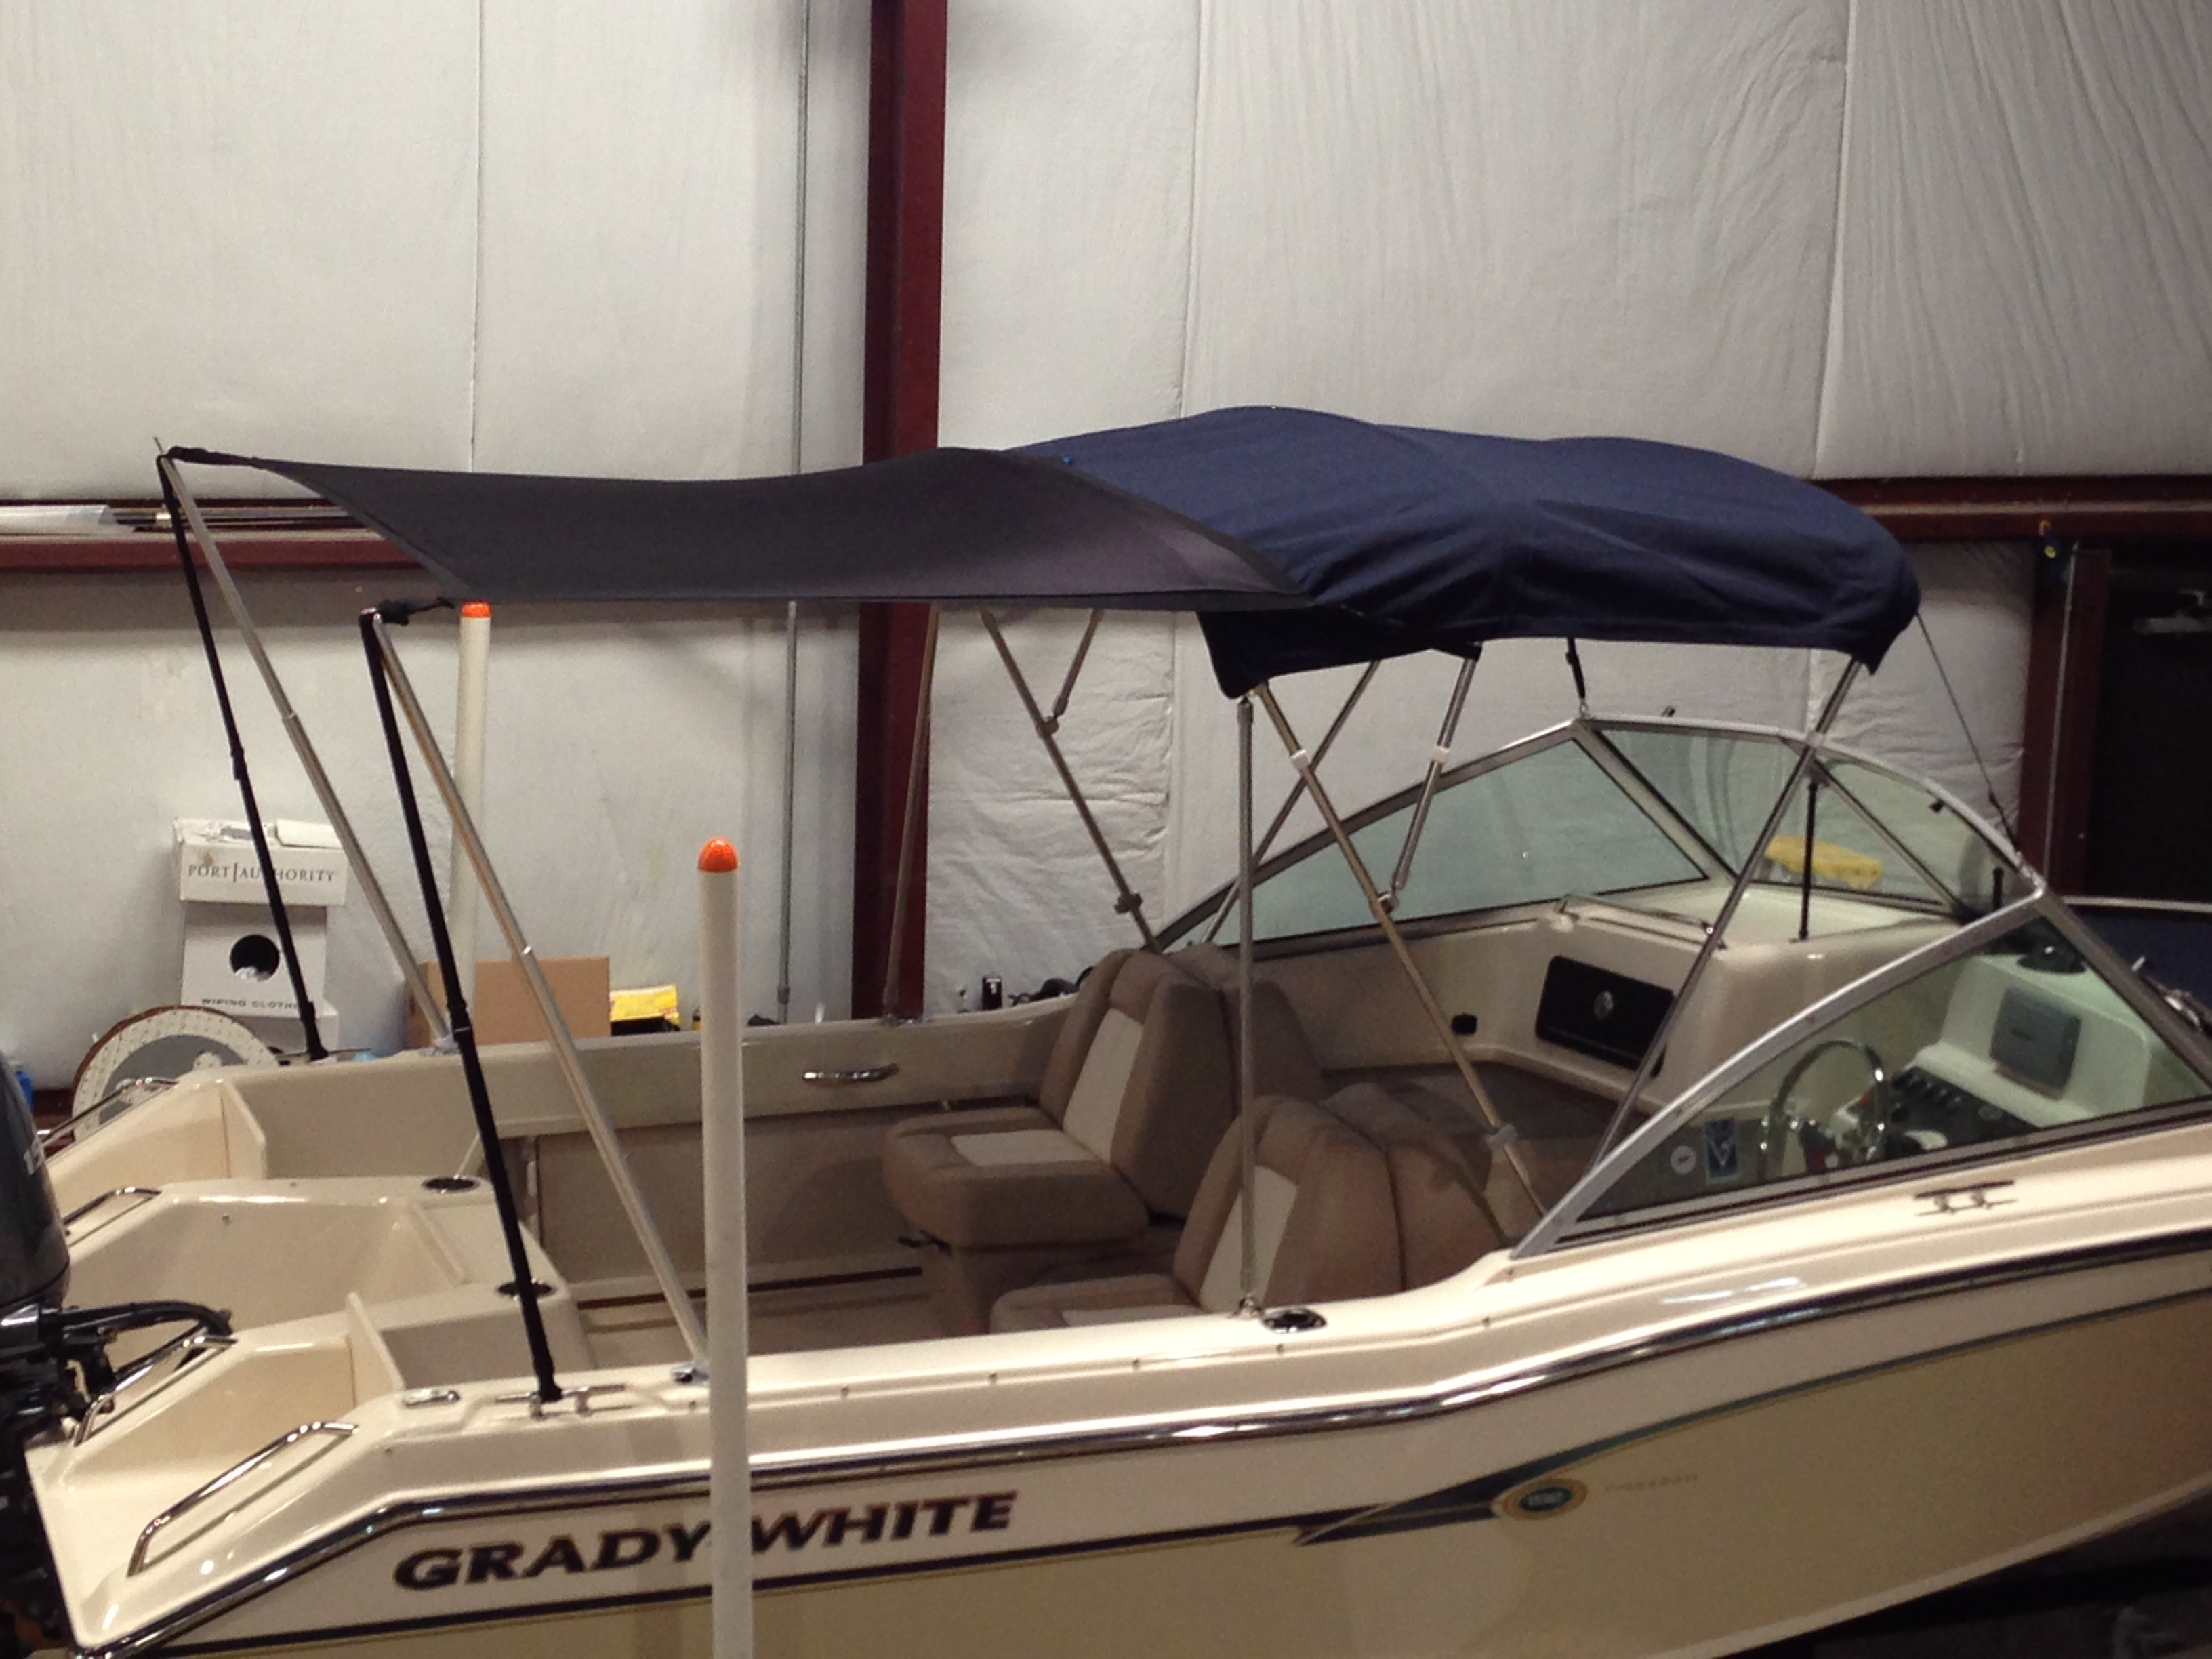 Grady White Tournament 192, 20xx Boat Shade Kit Bimini, starboard rear